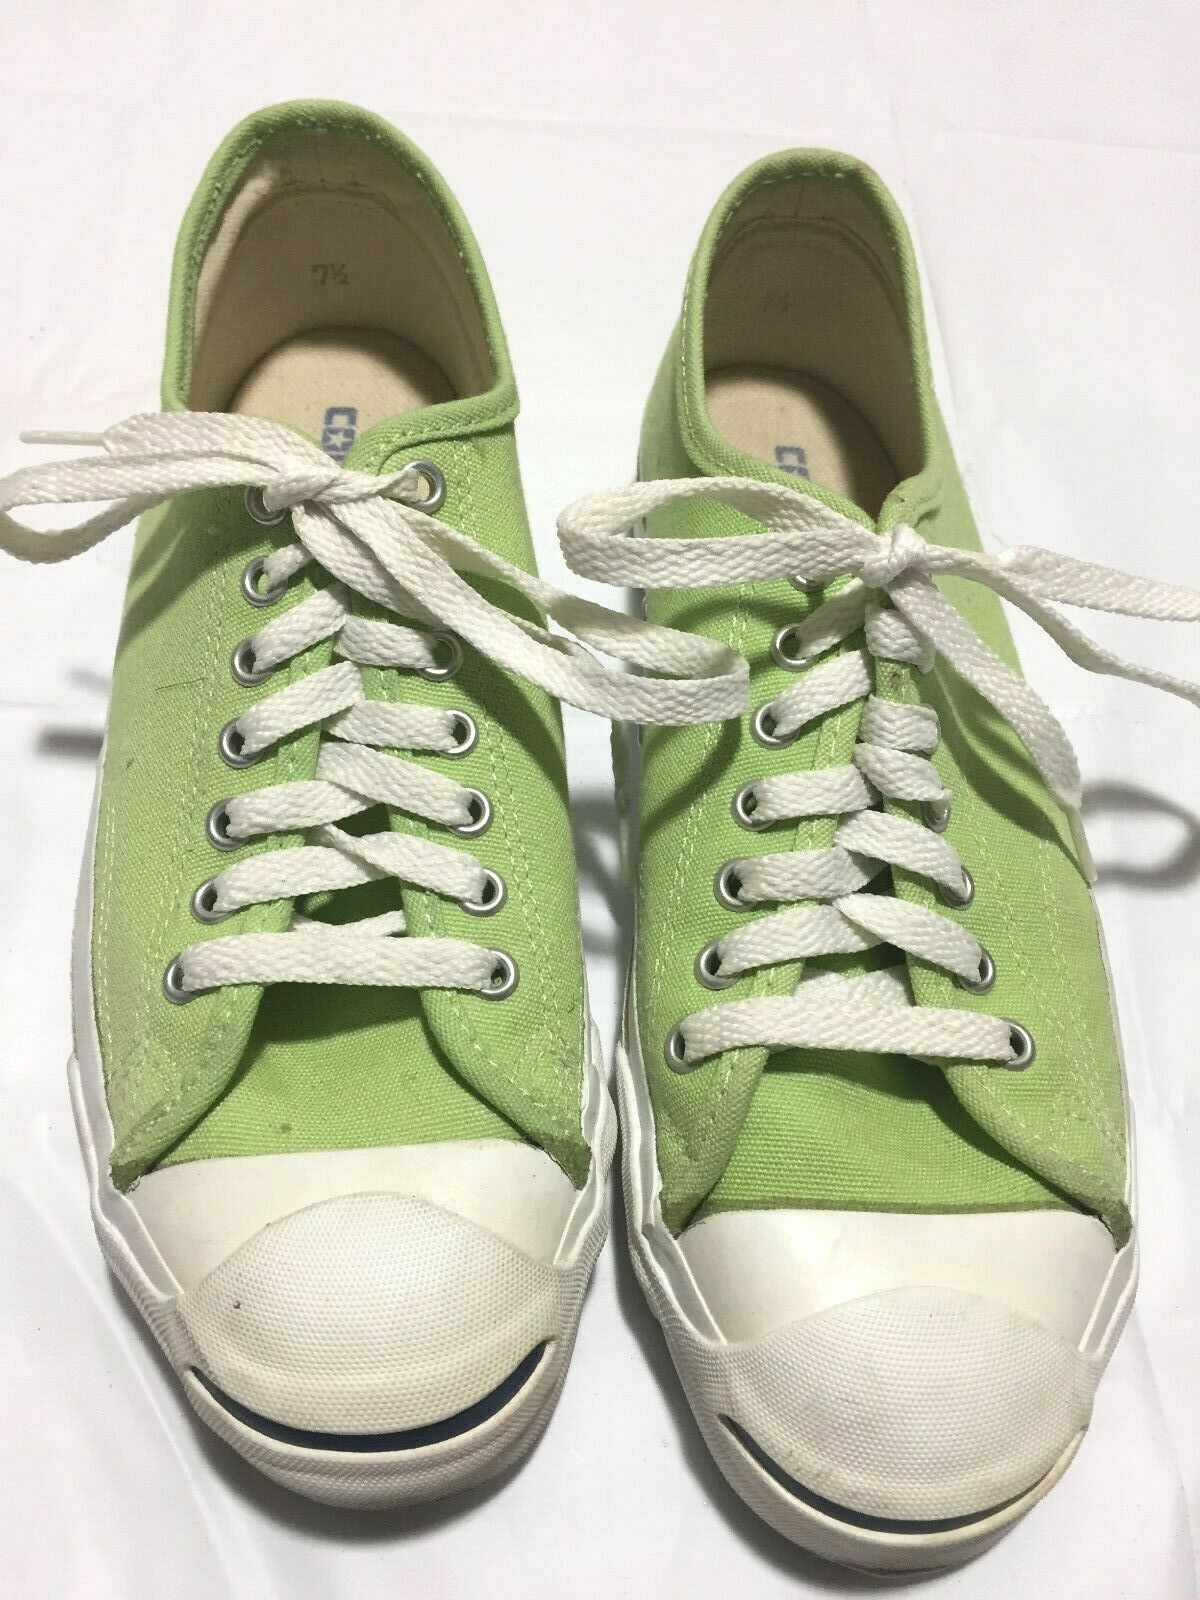 1cb5f41489c4 Vintage Converse Jack Purcell Low Top Sneakers Men s 7 1 2 Made USA Lime  Green